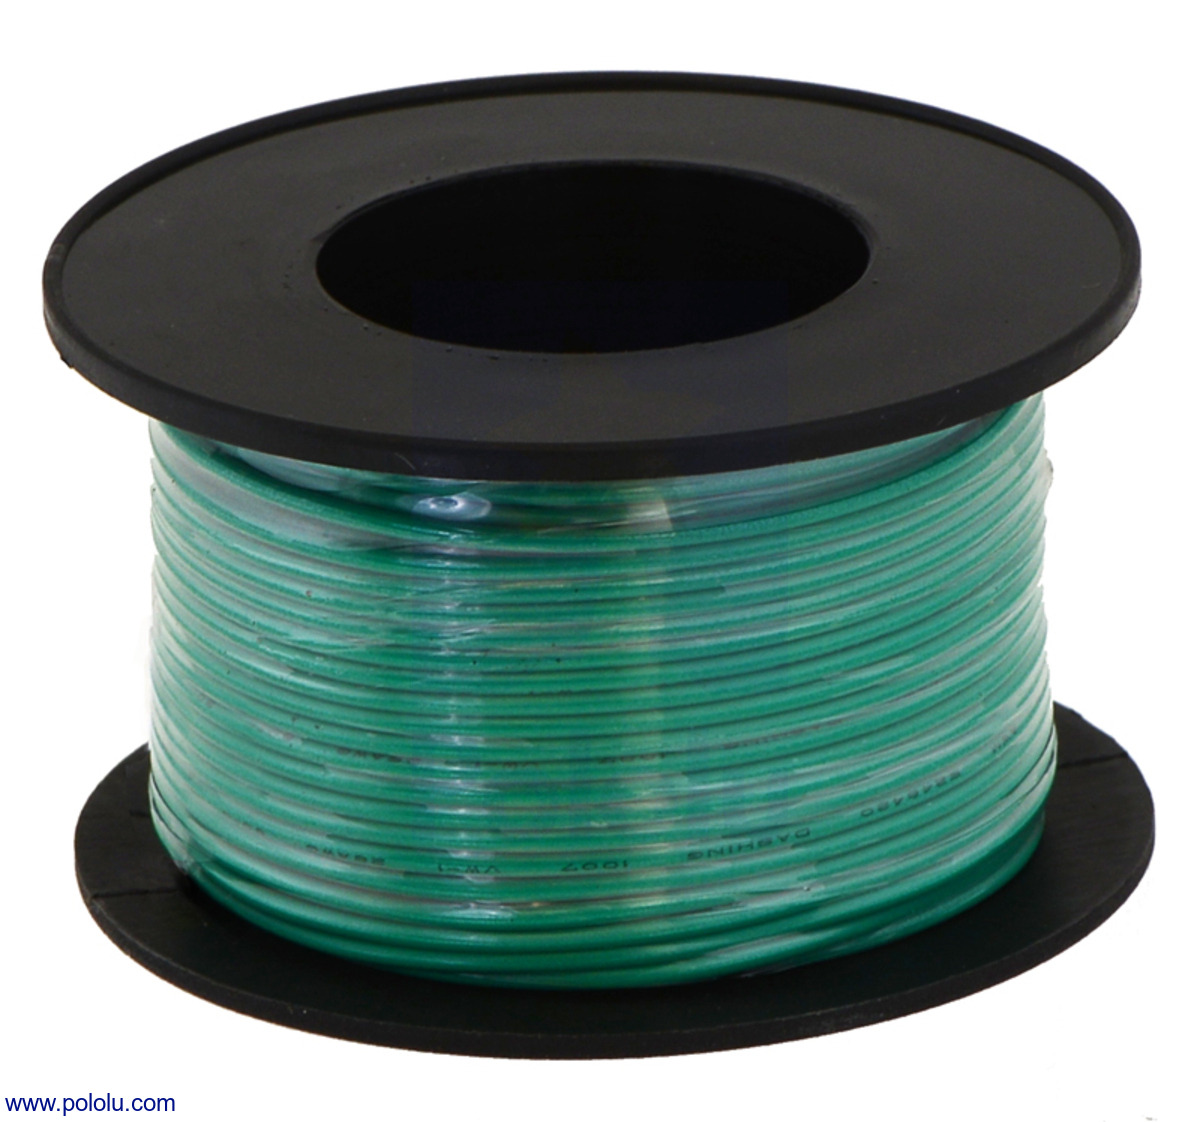 Pololu - Stranded Wire: Green, 24 AWG, 60 Feet